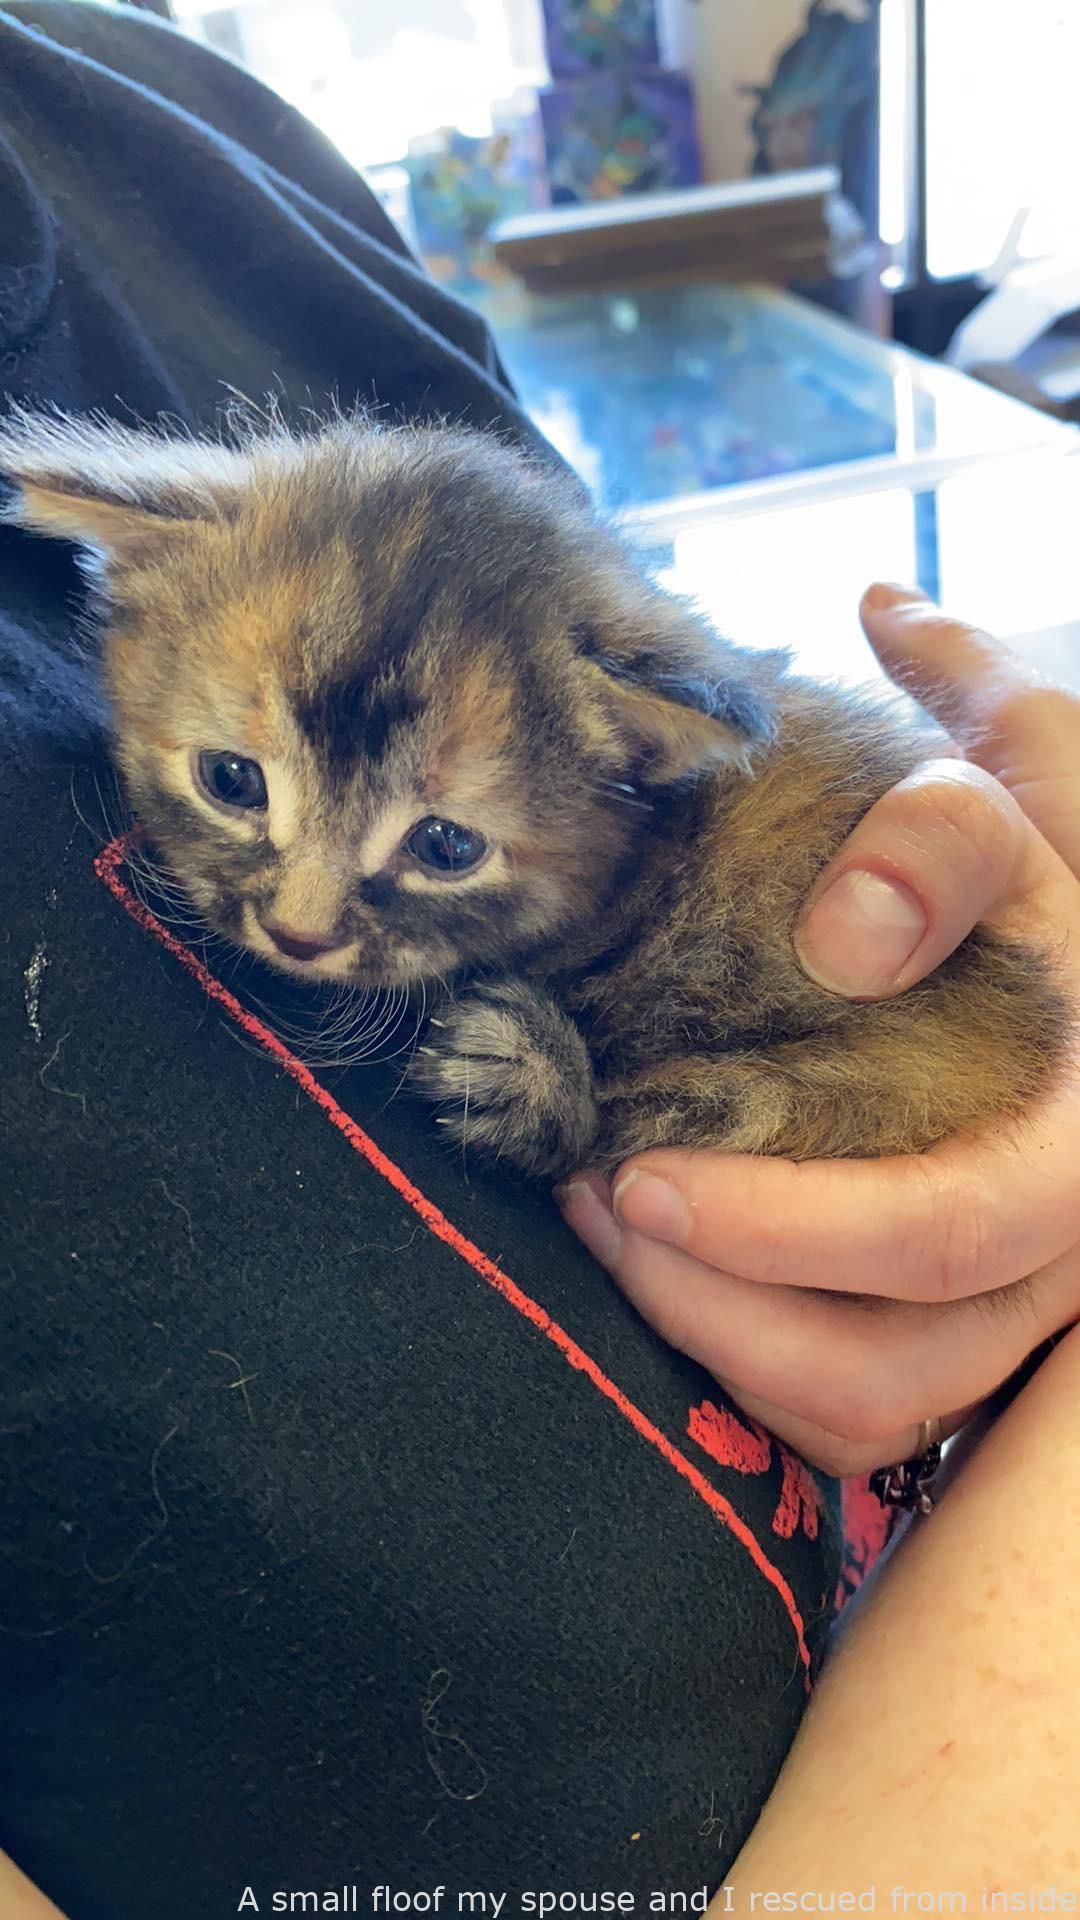 #Positivethings  - A small floof my wife and I rescued from within a vehicle – hot #adorable animals funny , #animals hilarious , #cute animal , #cutest animals , #so cute animals